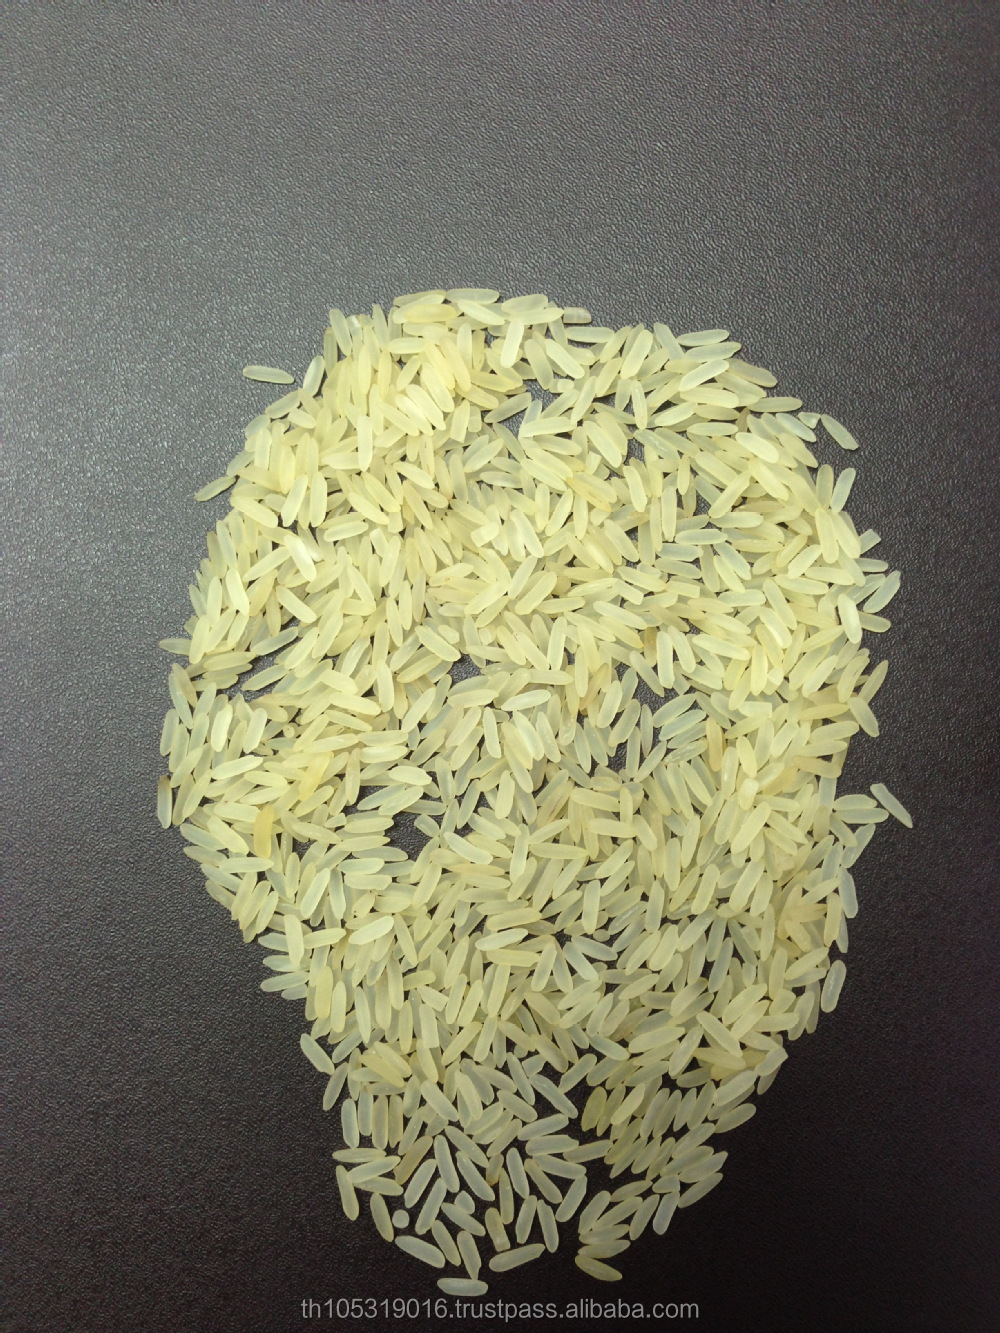 Thai Long Grain Parboiled Rice 5% Broken, Sortexed